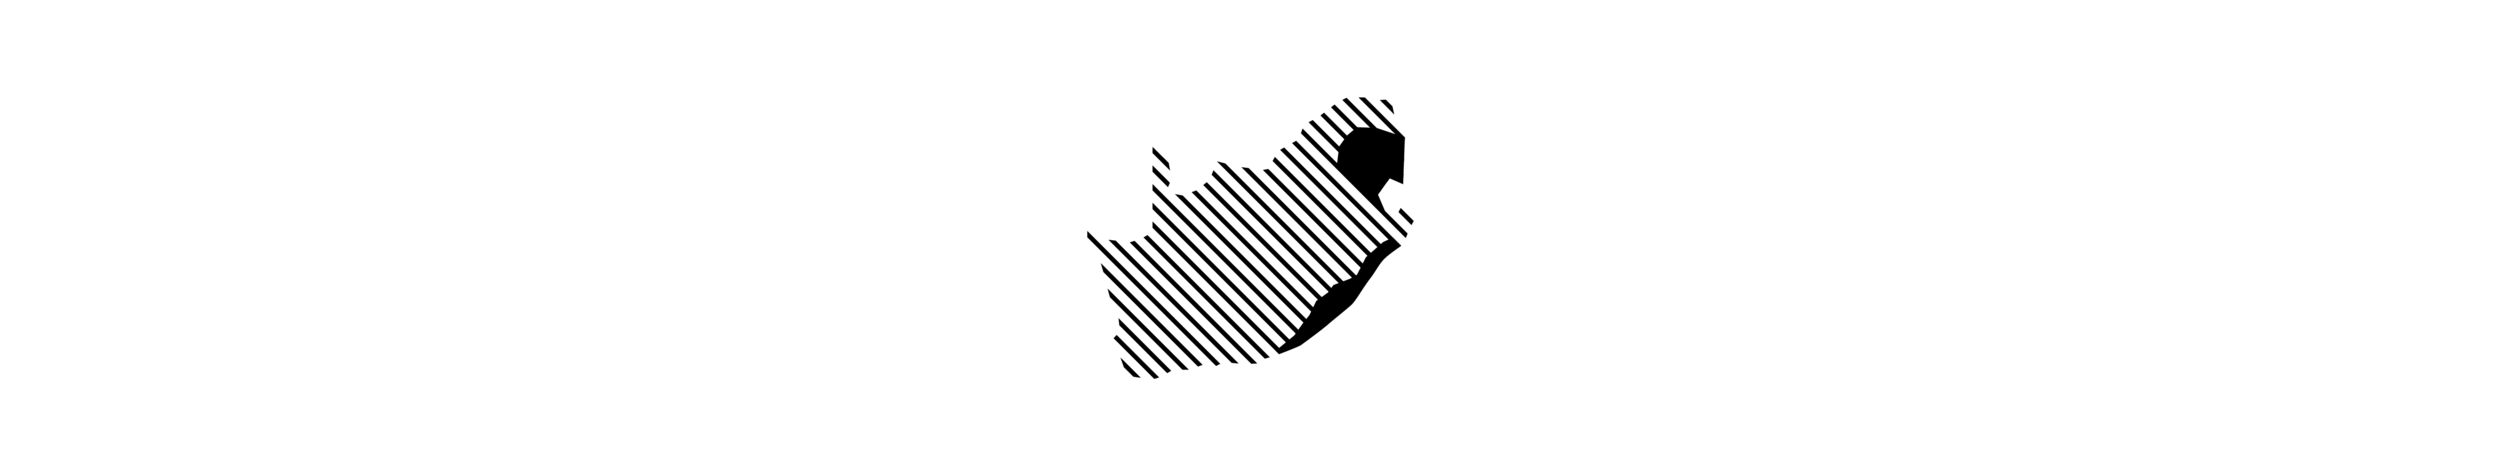 MaisonMacolat_icons-17.png